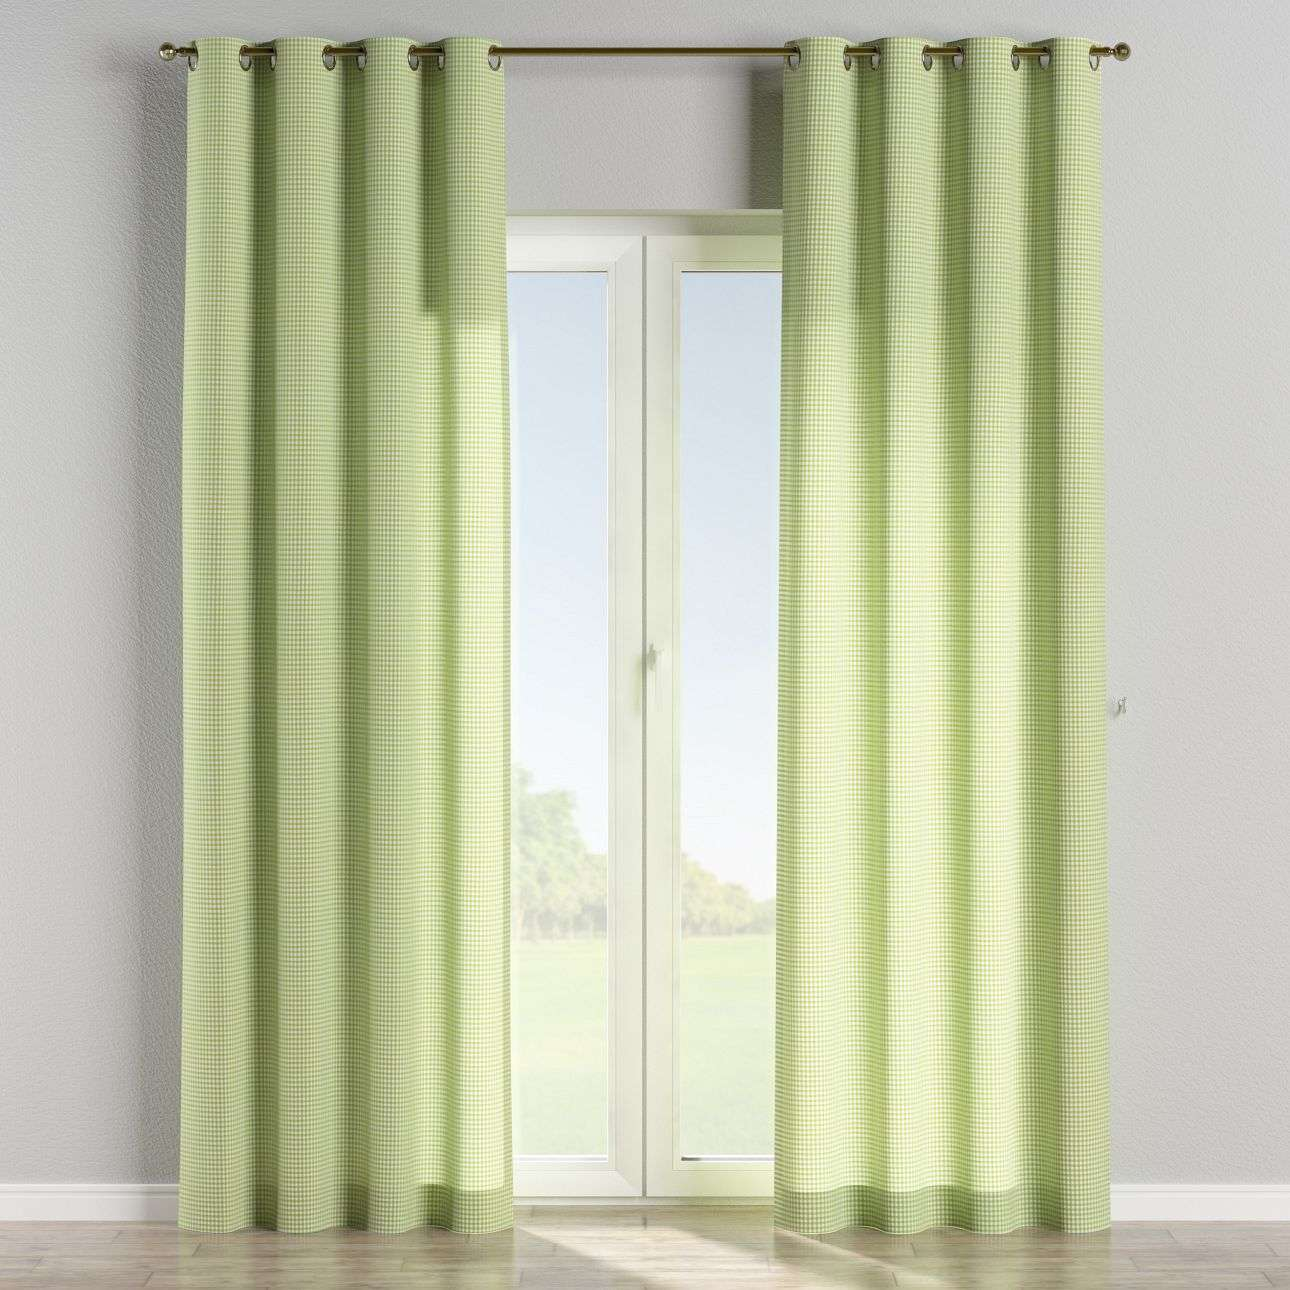 Eyelet curtains 130 x 260 cm (51 x 102 inch) in collection Quadro, fabric: 136-33